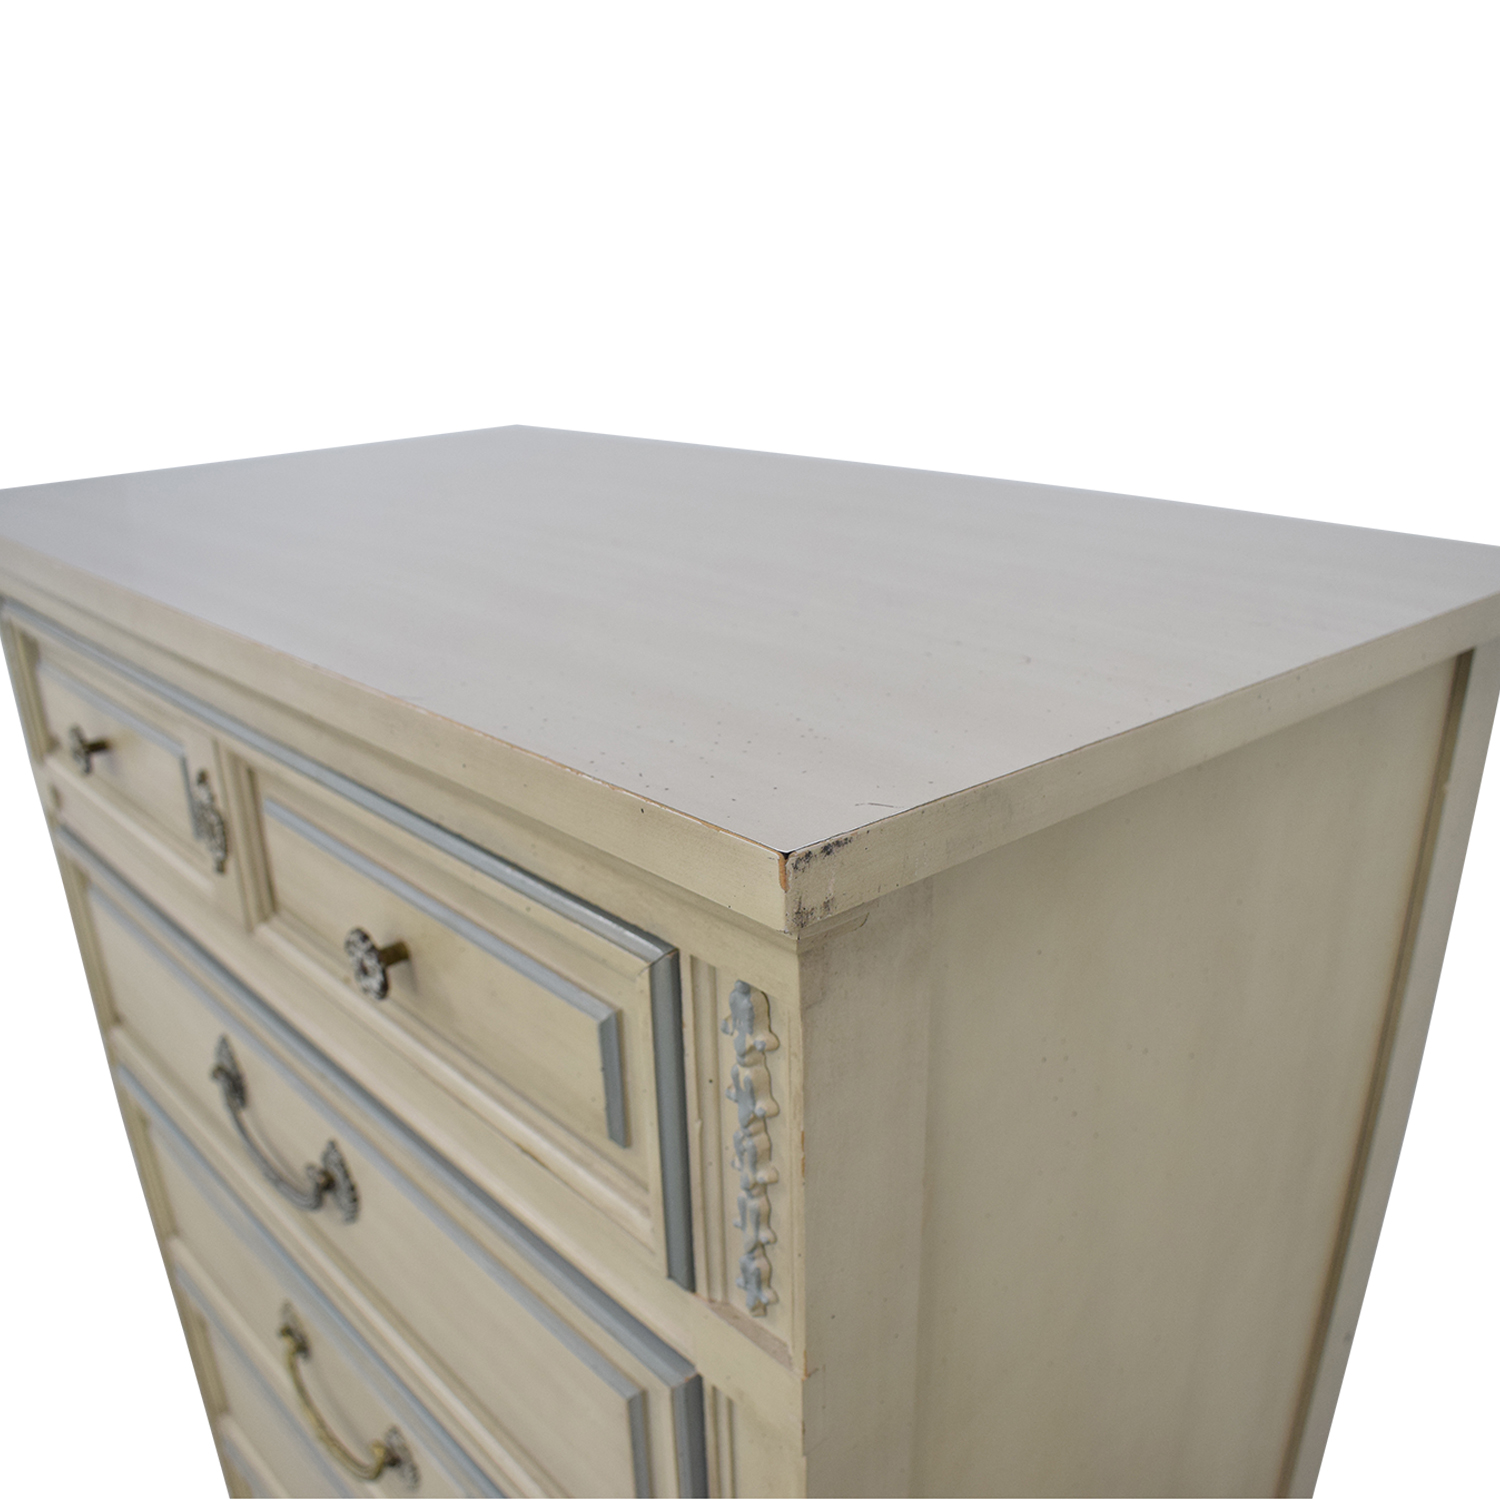 Dixie Furniture Company Dixie Furniture Chest Of Five Drawers off white